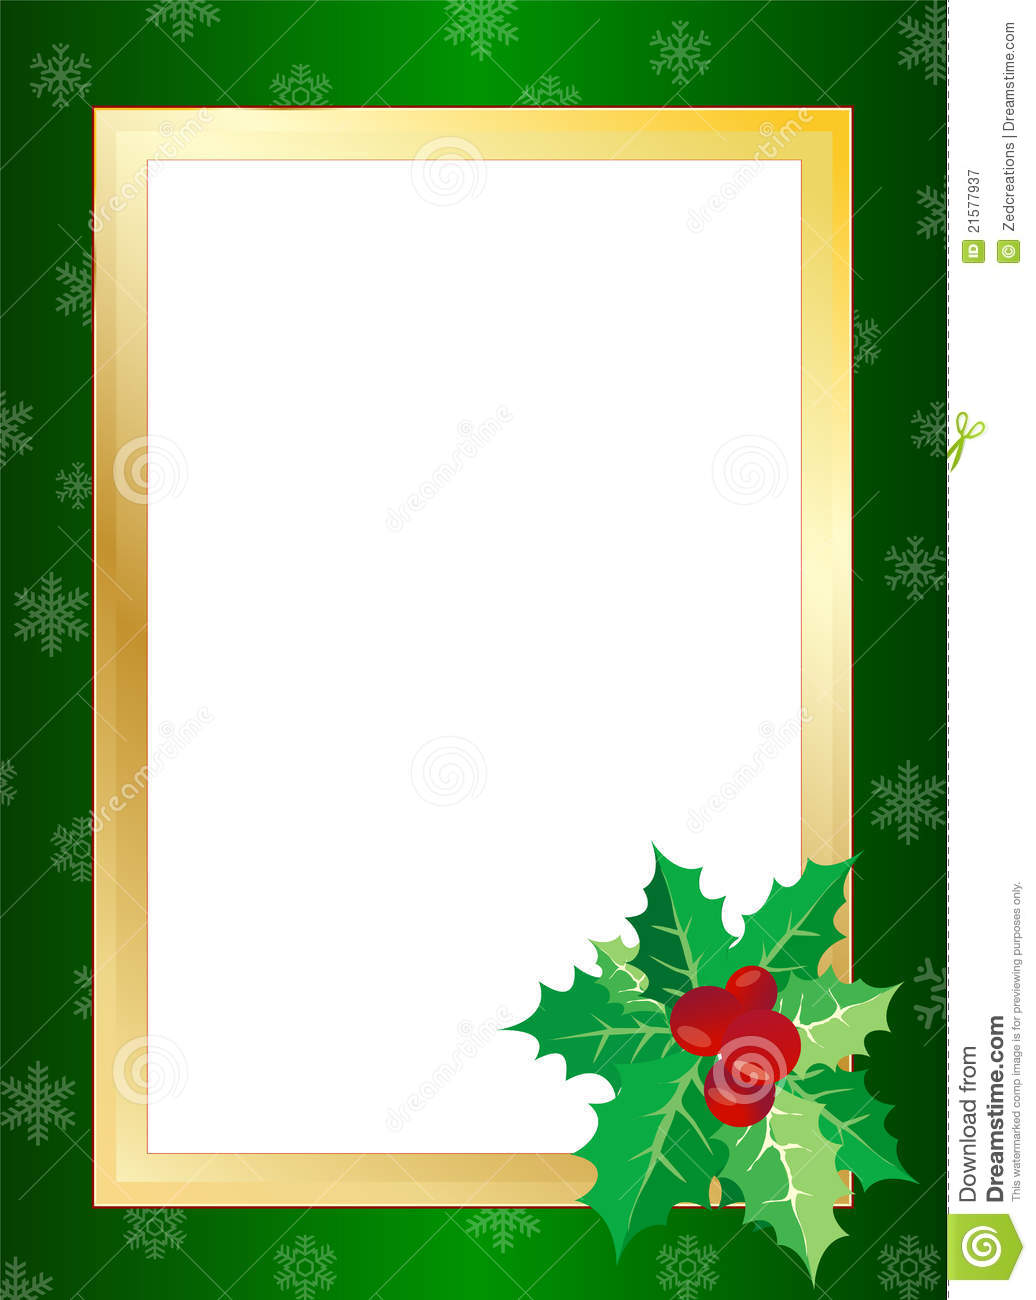 Christmas Border Royalty Free Stock Photography - Image: 21577937